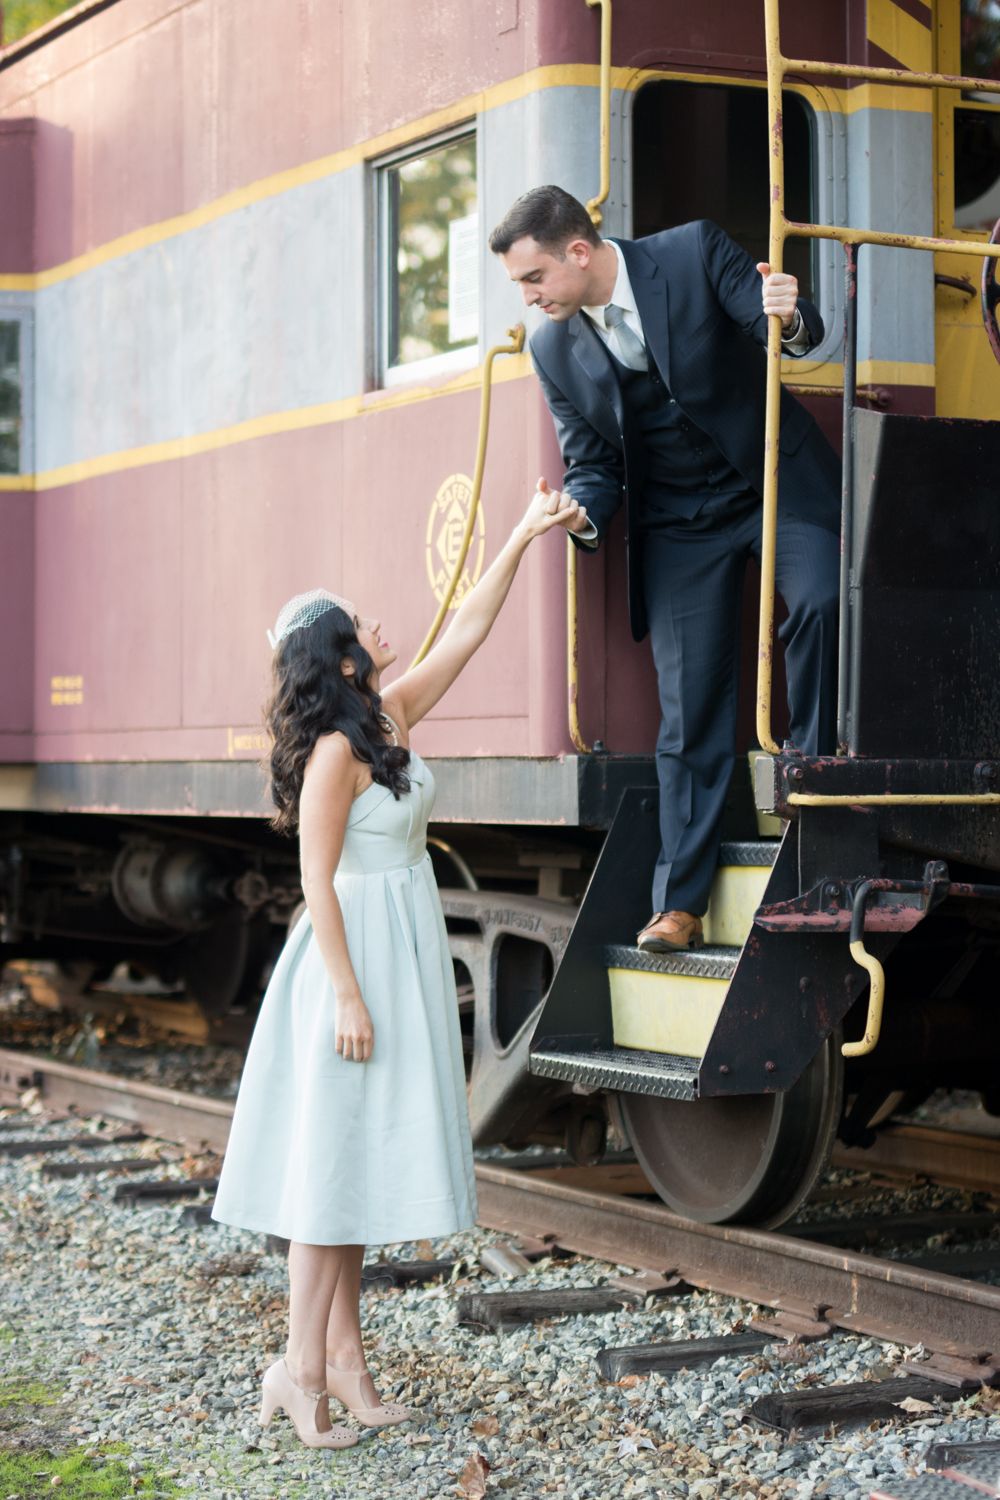 Michelle and Joe- Whippany Railway Musem 1950s Engagement - New Jersey -Olivia Christina Photography-85.jpg